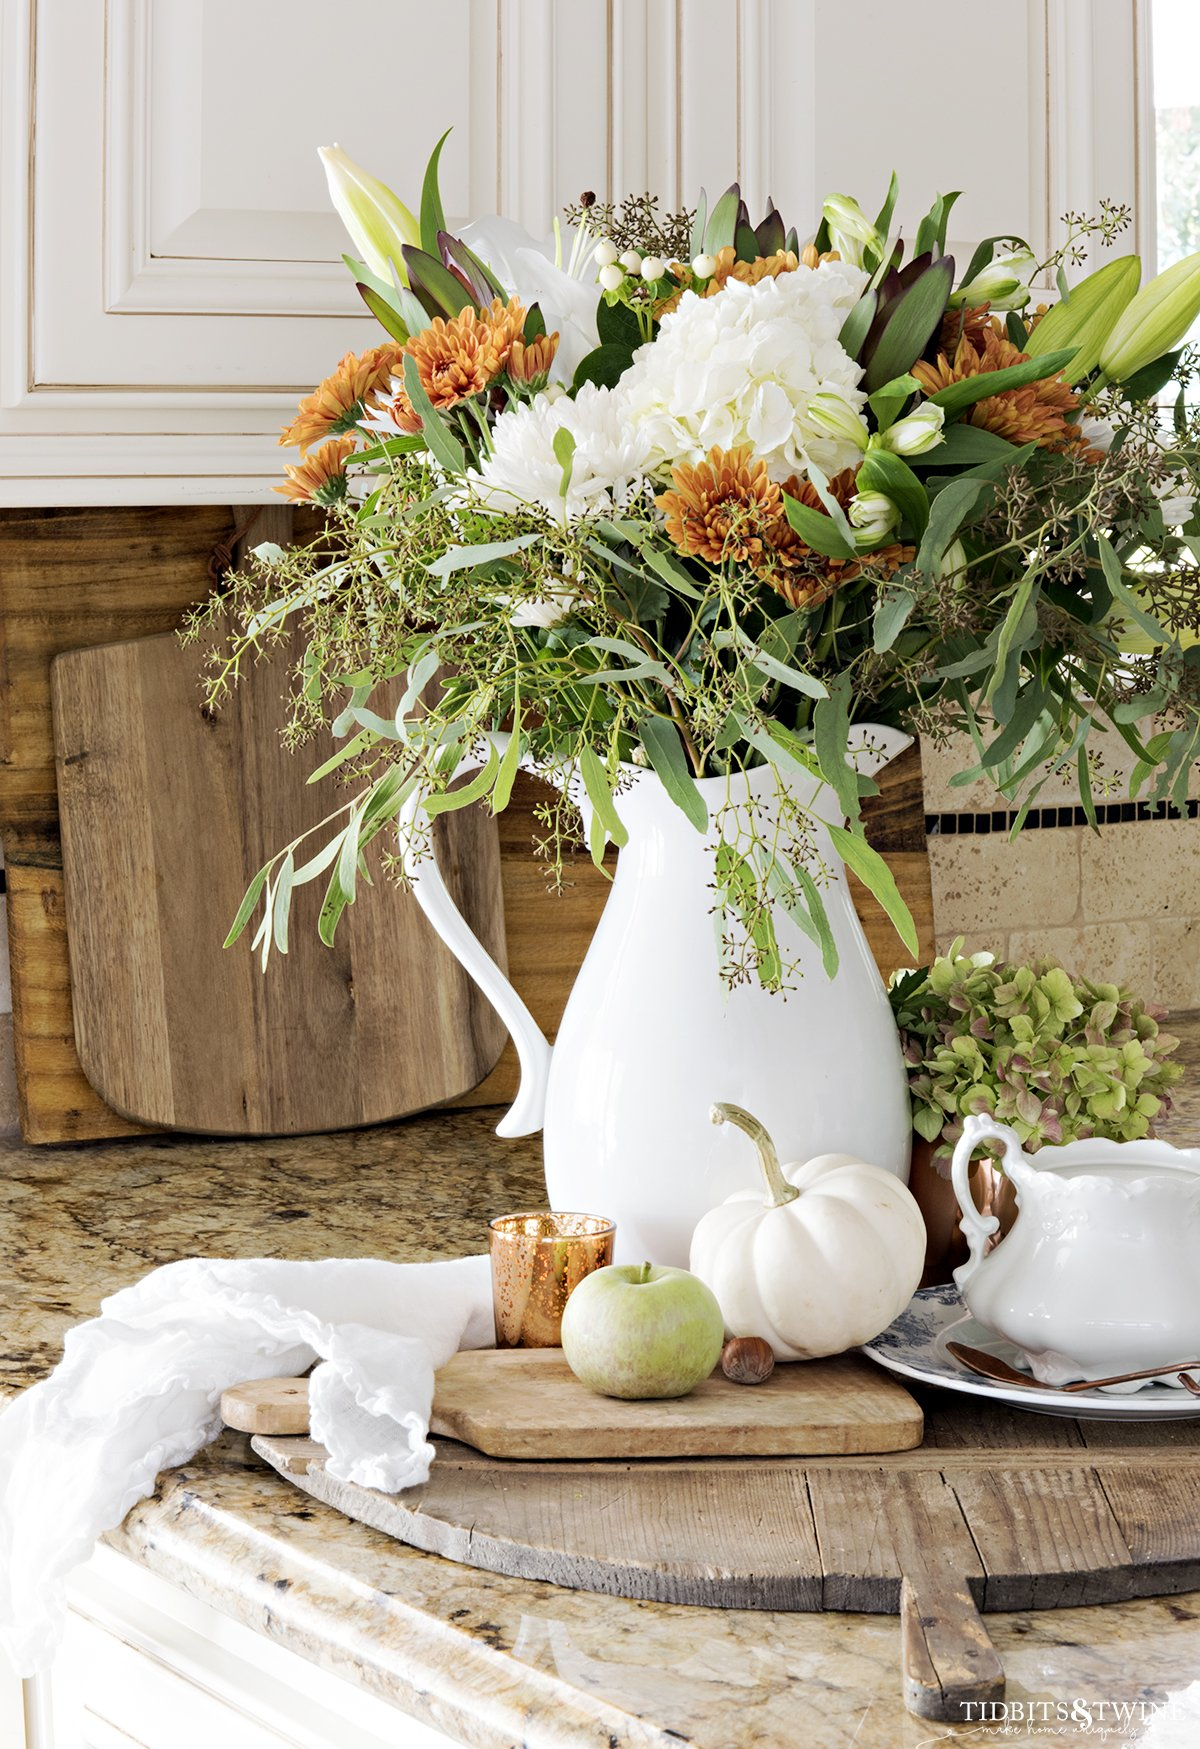 kitchen counter with fall vignette of white green and copper flowers in white pitcher on antique bread board with white pumpkins and apples